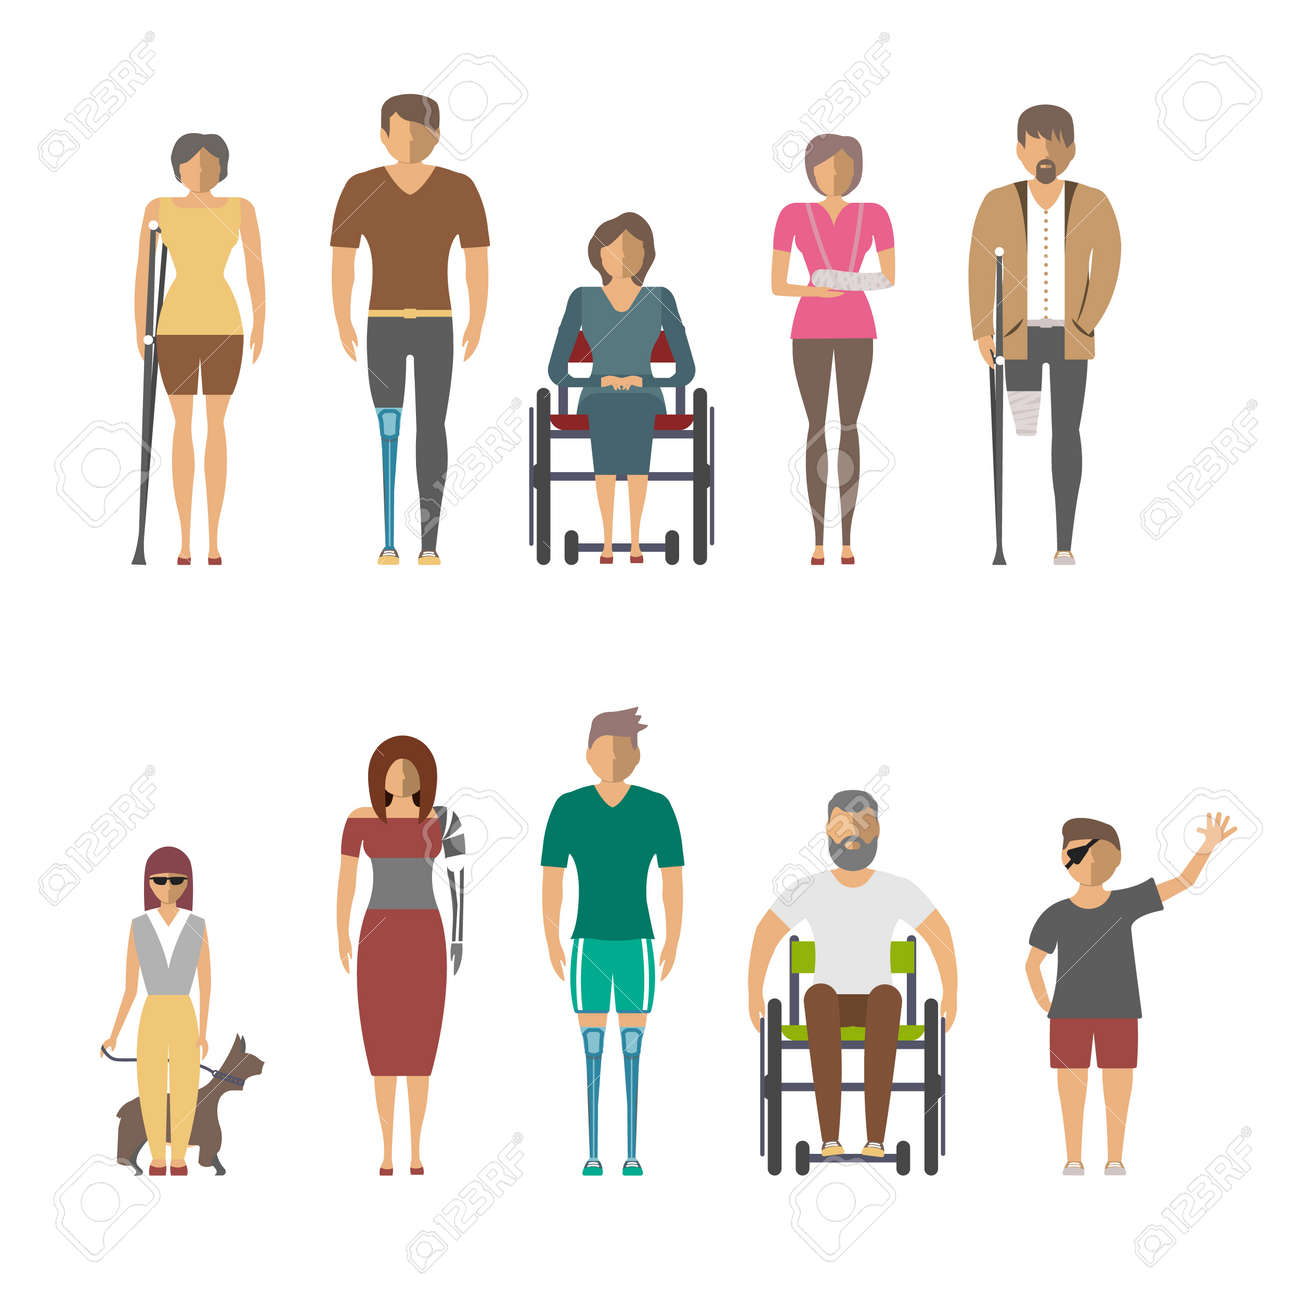 Disabled people isolated set in flat design vector illustration. Invalid person, blind woman, broken arm, people on wheelchair, prosthetic arms and legs. Healthcare assistance and accessibility - 74377226